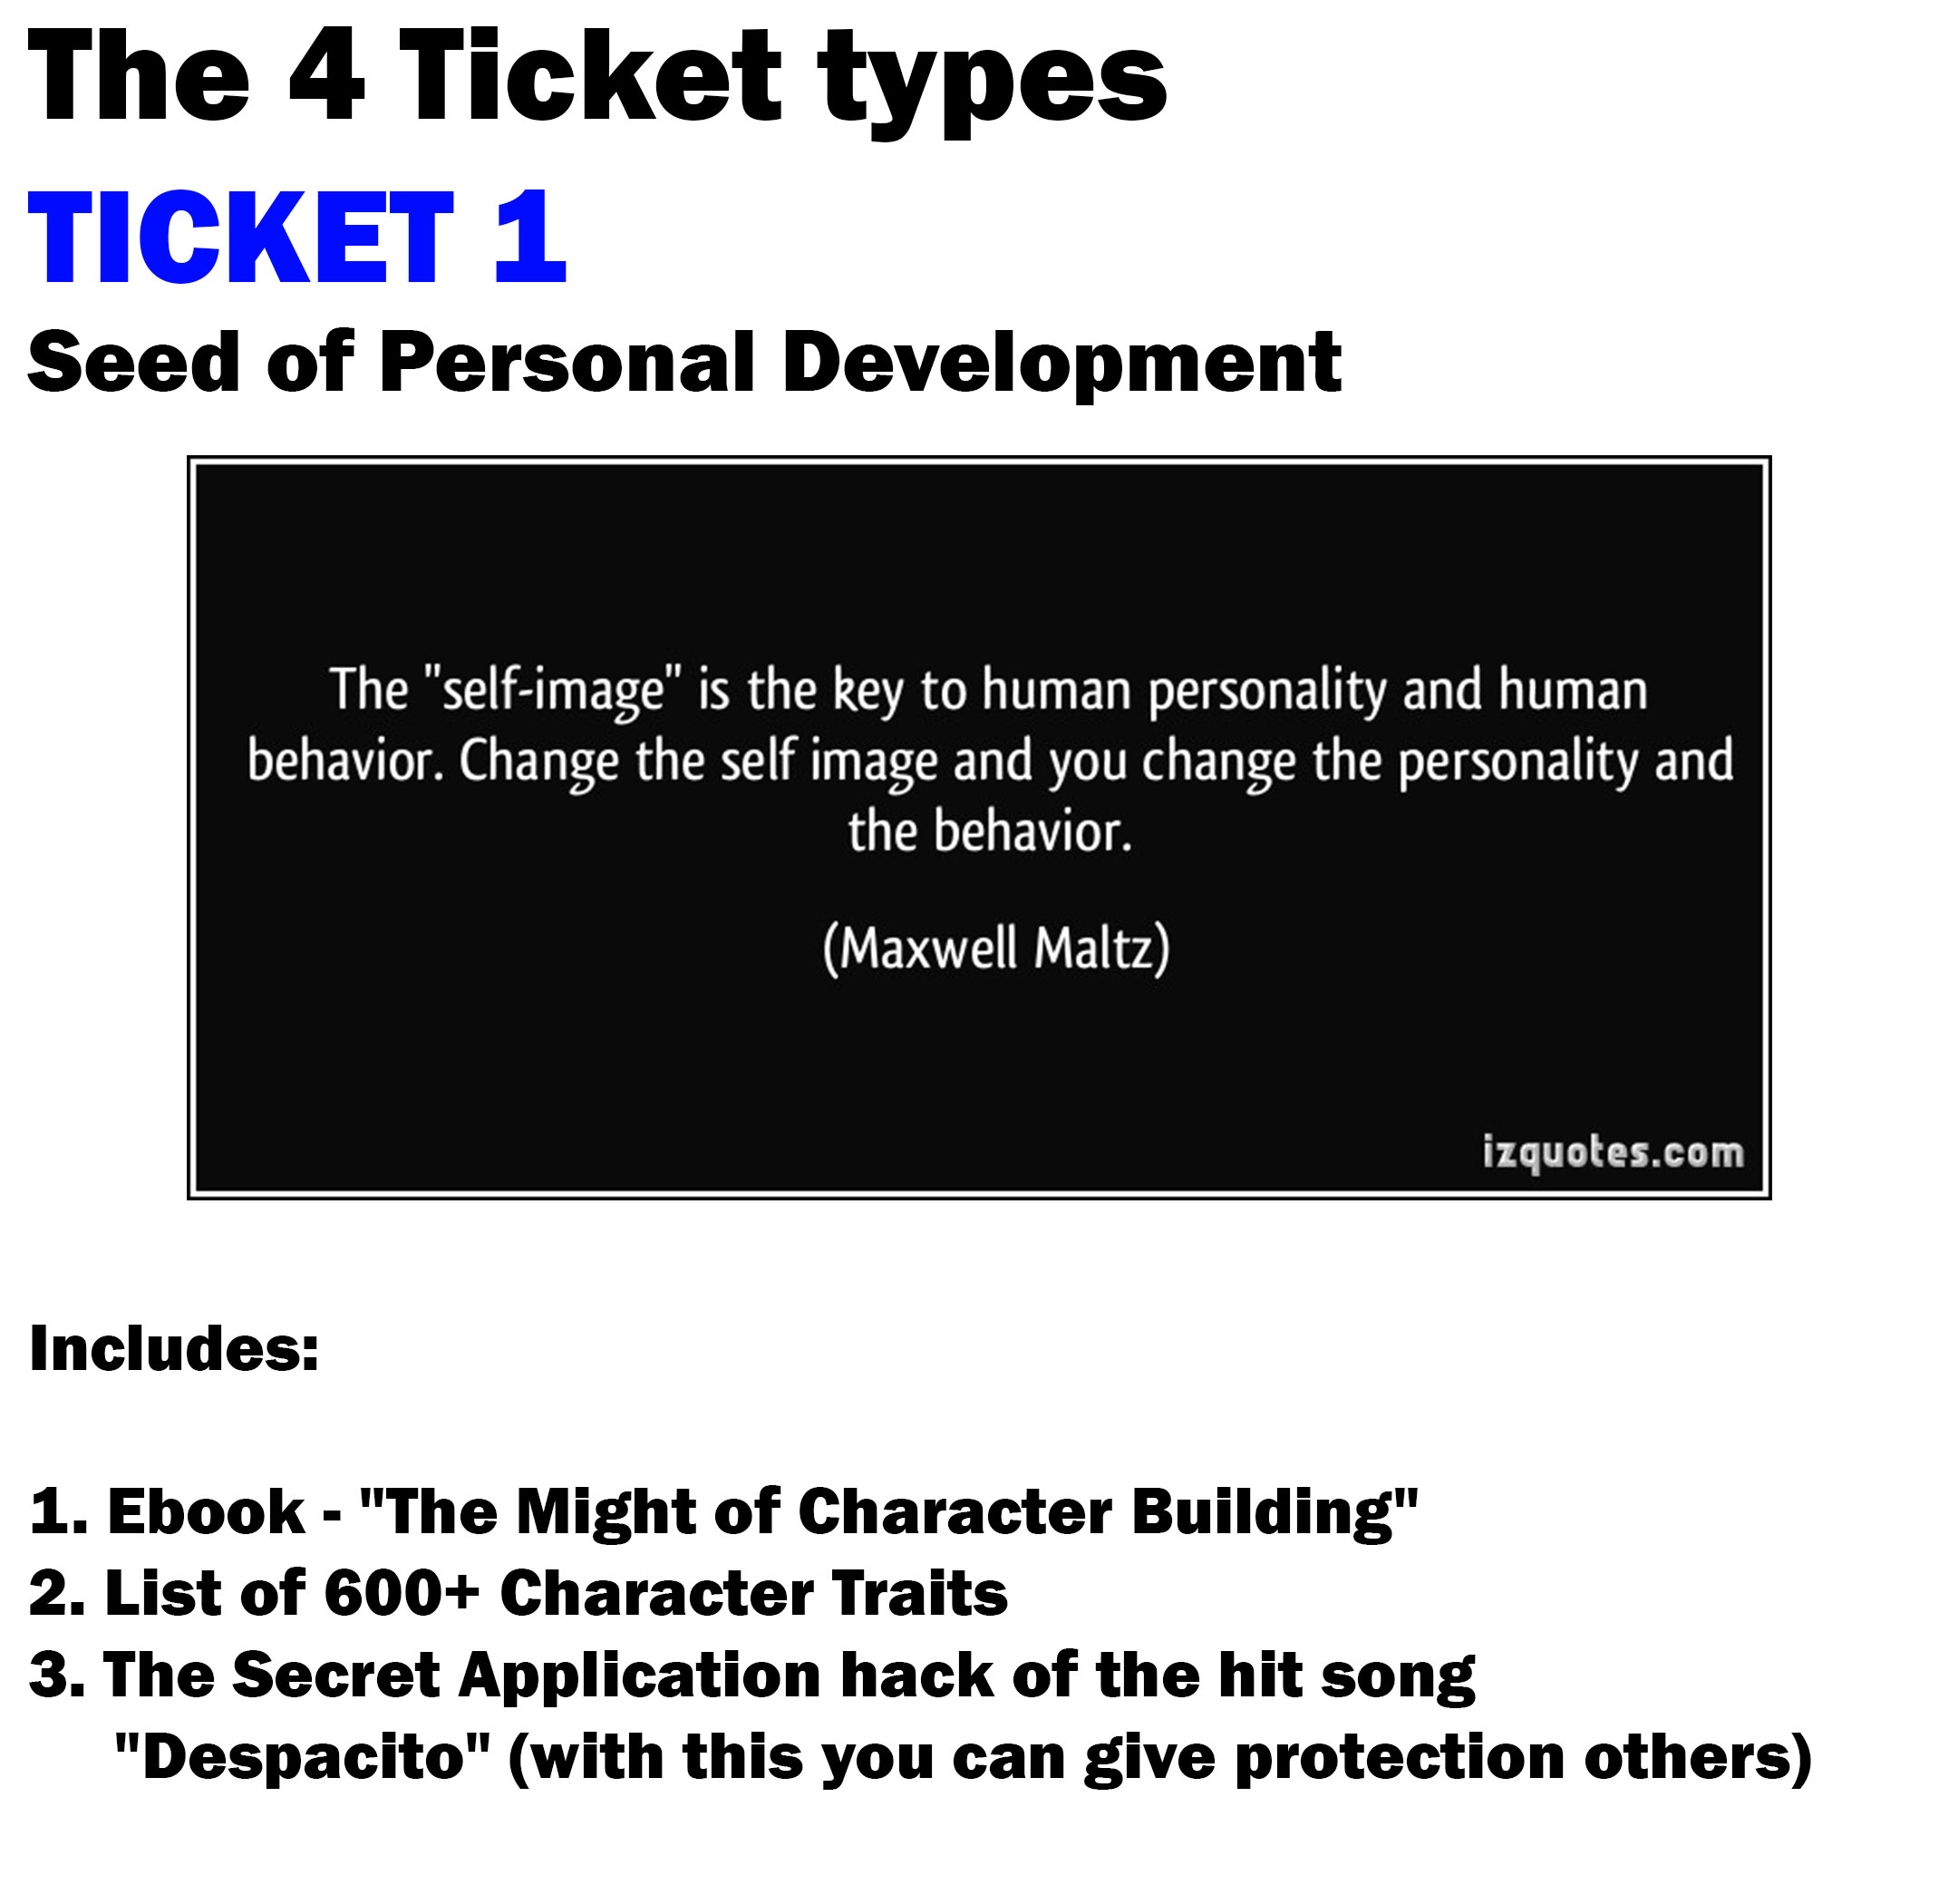 SEED1 Ticket 1 Seed of personal development